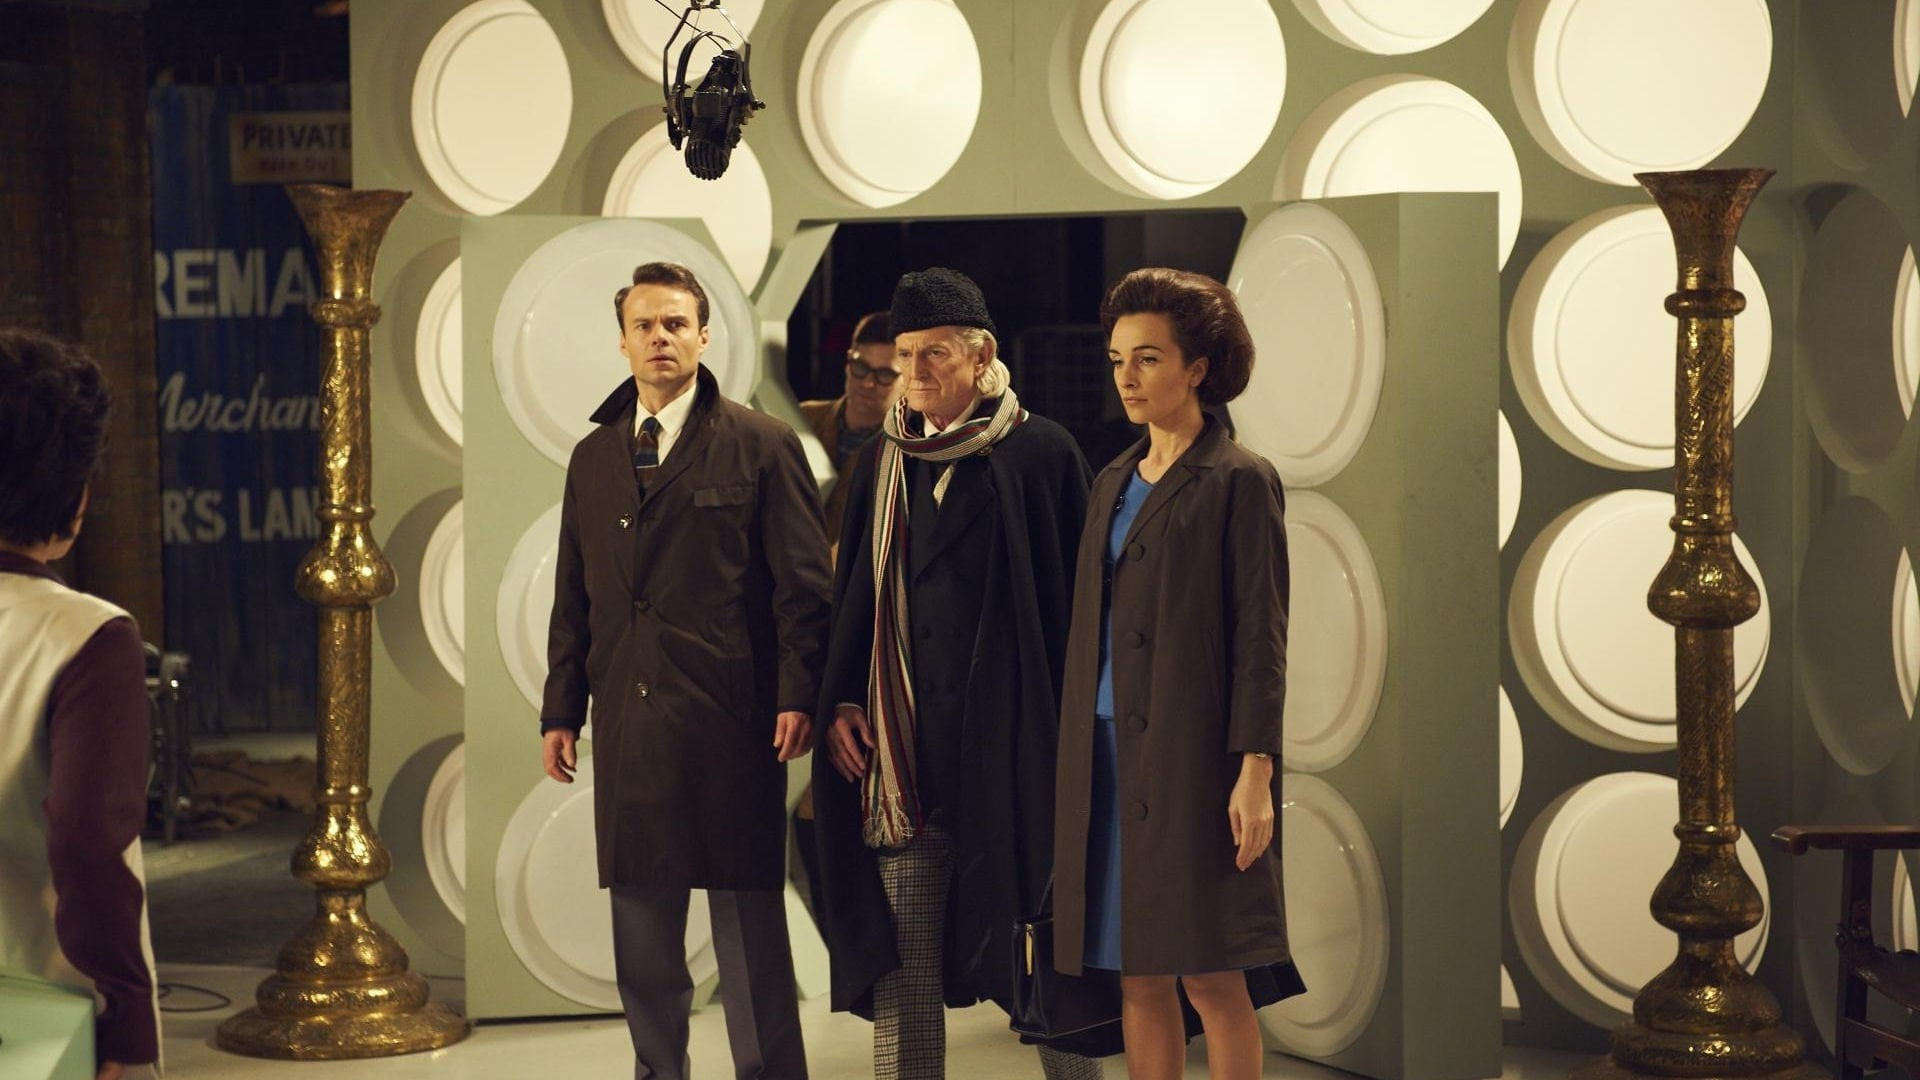 Doctor Who - Season 0 Episode 78 : An Adventure in Space and Time